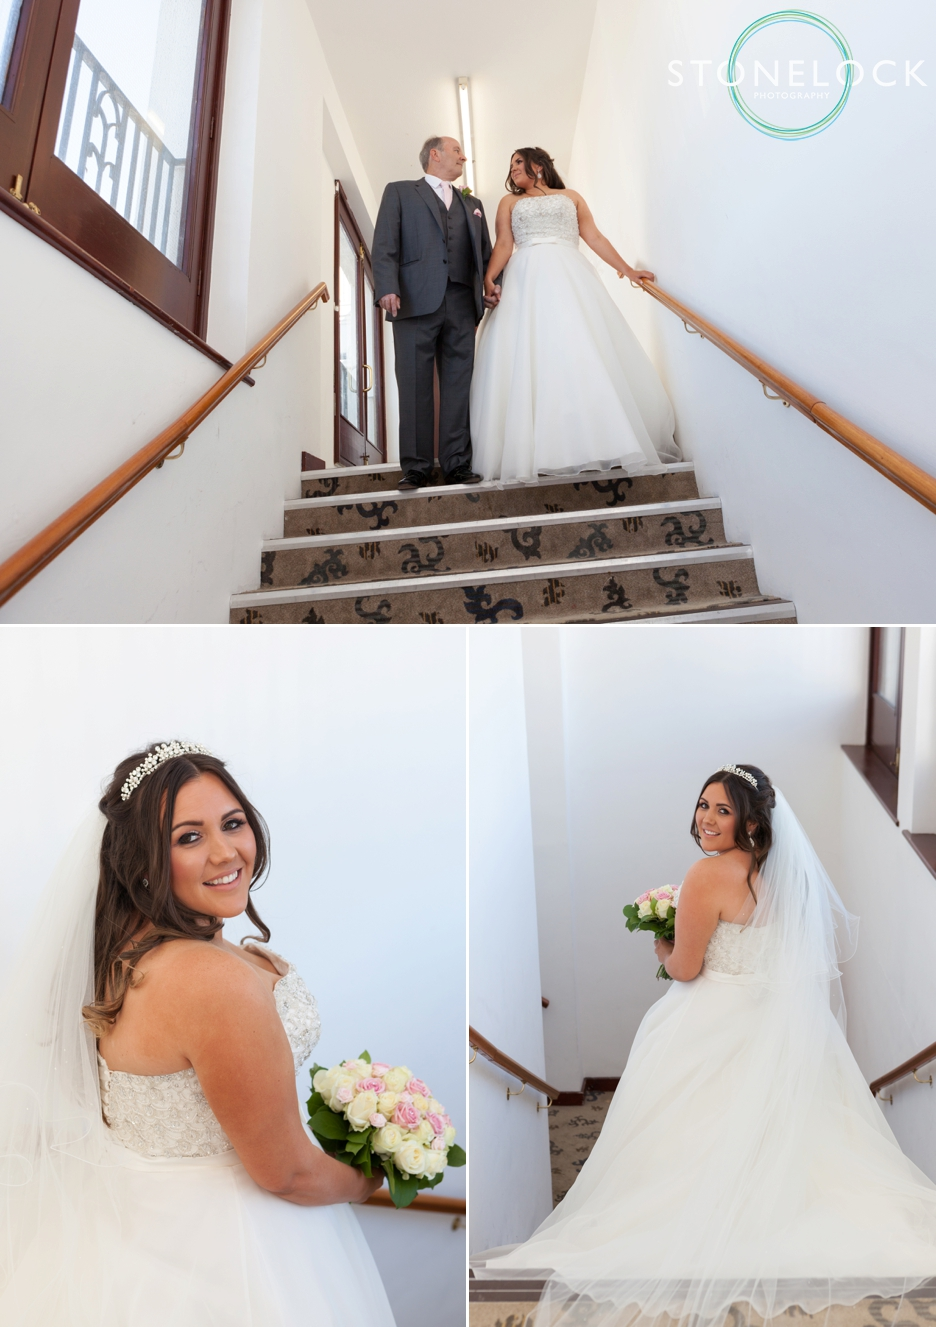 The bride and her father at Copthorne Effingham Park Hotel Surrey